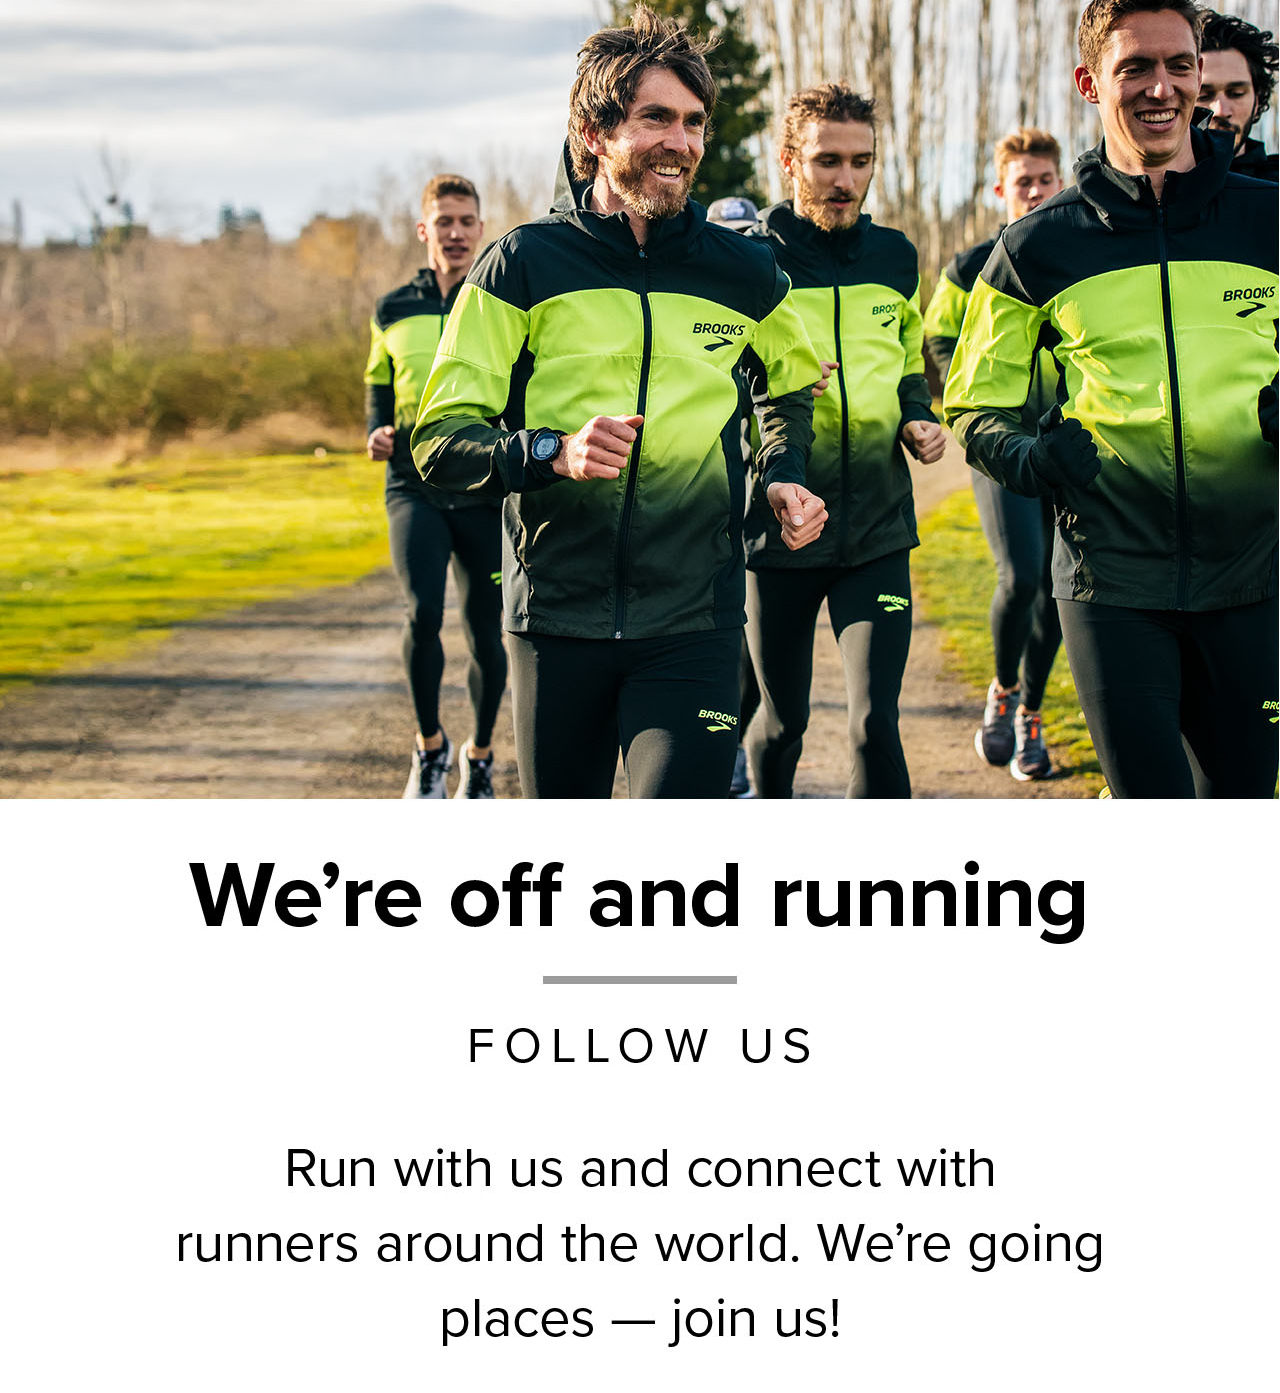 We're off and running  Follow us  Run with us and connect with runners around the world. We're going places – join us!